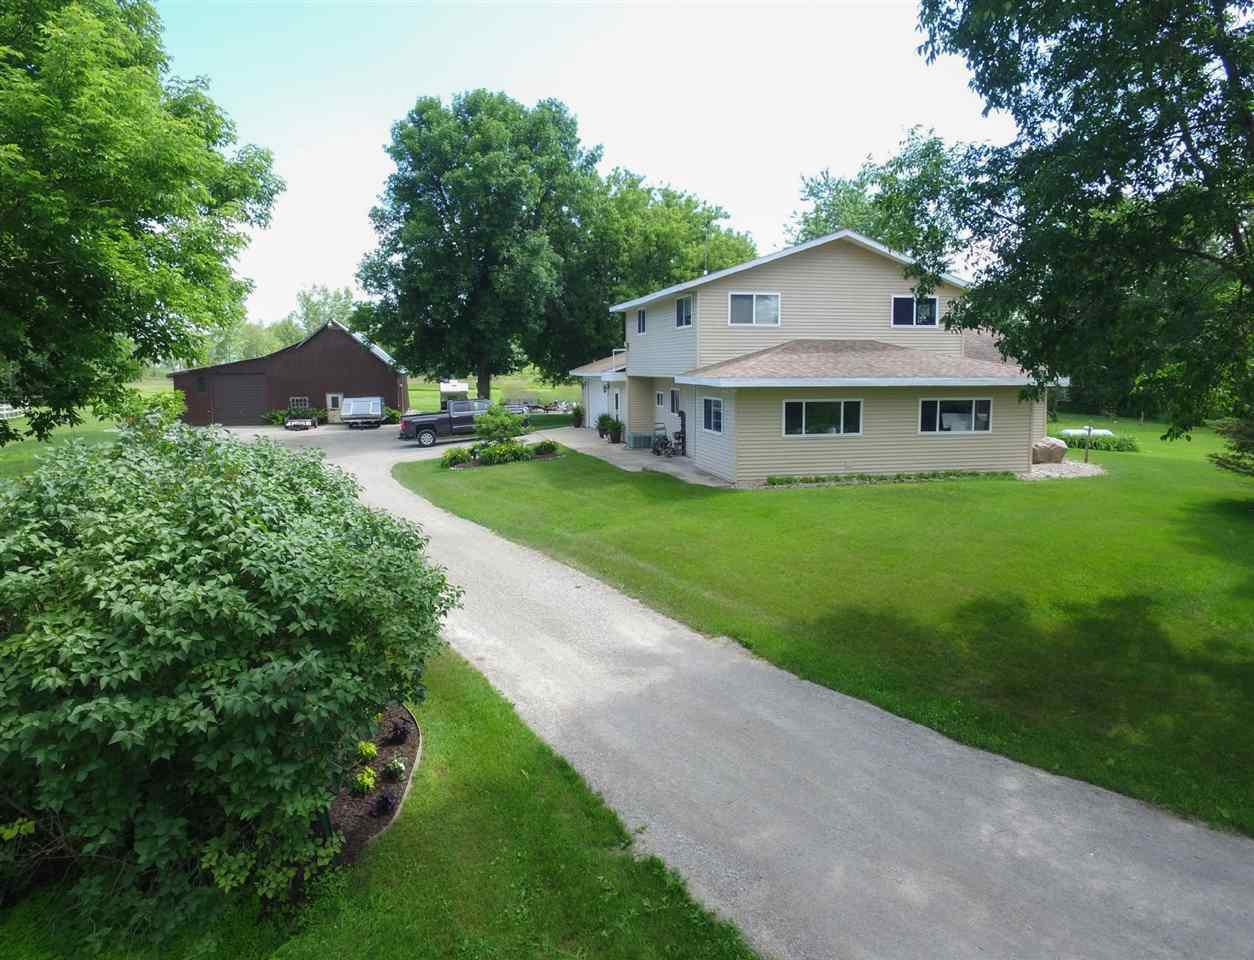 An outdoor enthusiasts, hobby farmer, and horse owners dream! A truly unique property of 7.41 acres surrounded by 434 acres of the Little Tail Unit which is part of the larger 9000 acre Green Bay West Shore Wildlife Area conservatory. Premier hunting, fishing, boating, kayaking, snowmobiling, and ice fishing right out your front door. This extremely private property on a dead end road includes a horse barn with stables and a large storage barn with hay mound. The two story, 2,256 sqft home with views of the Bay inside of Little Tail Point has 3 bedrooms, 1.5 baths, large vaulted living area, a